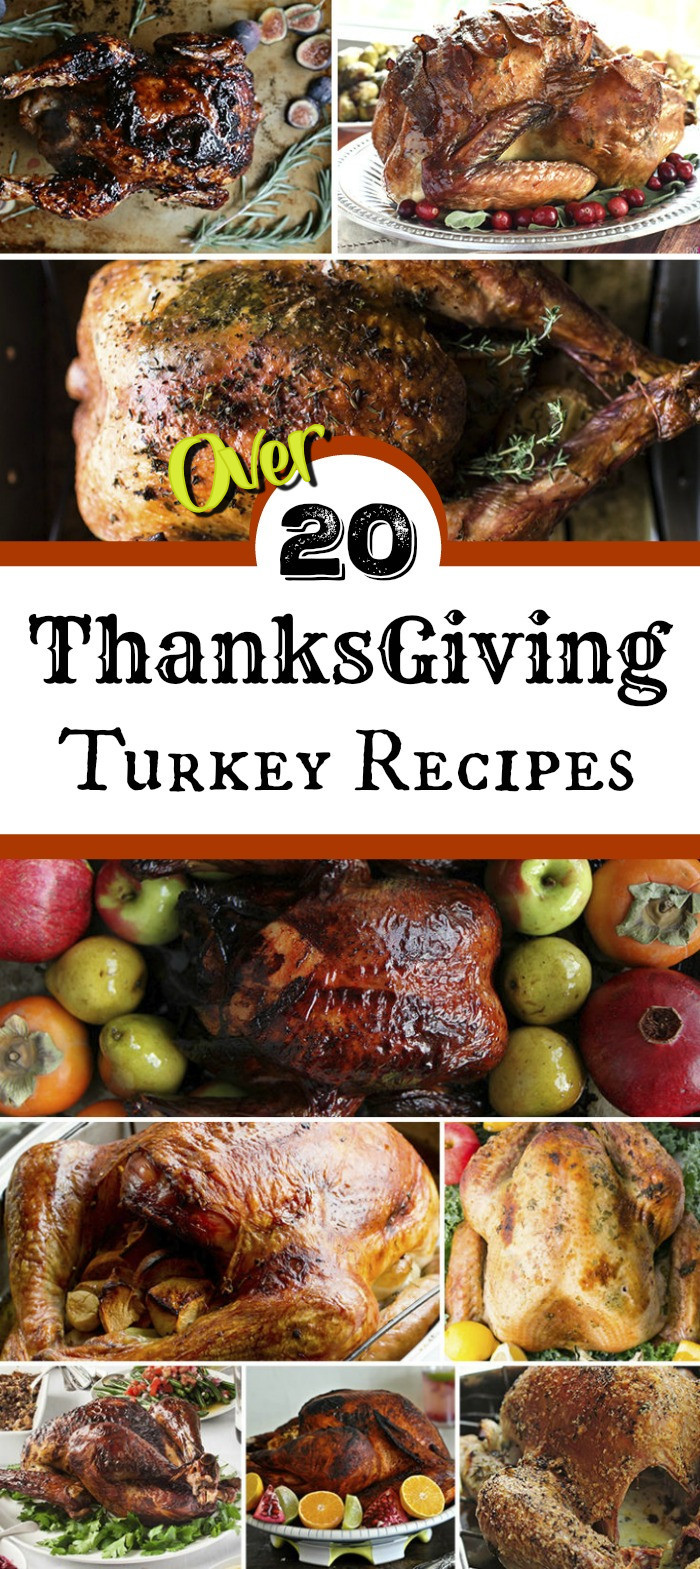 Turkey Recipe Thanksgiving  Thanksgiving Turkey Recipes for the Best Thanksgiving